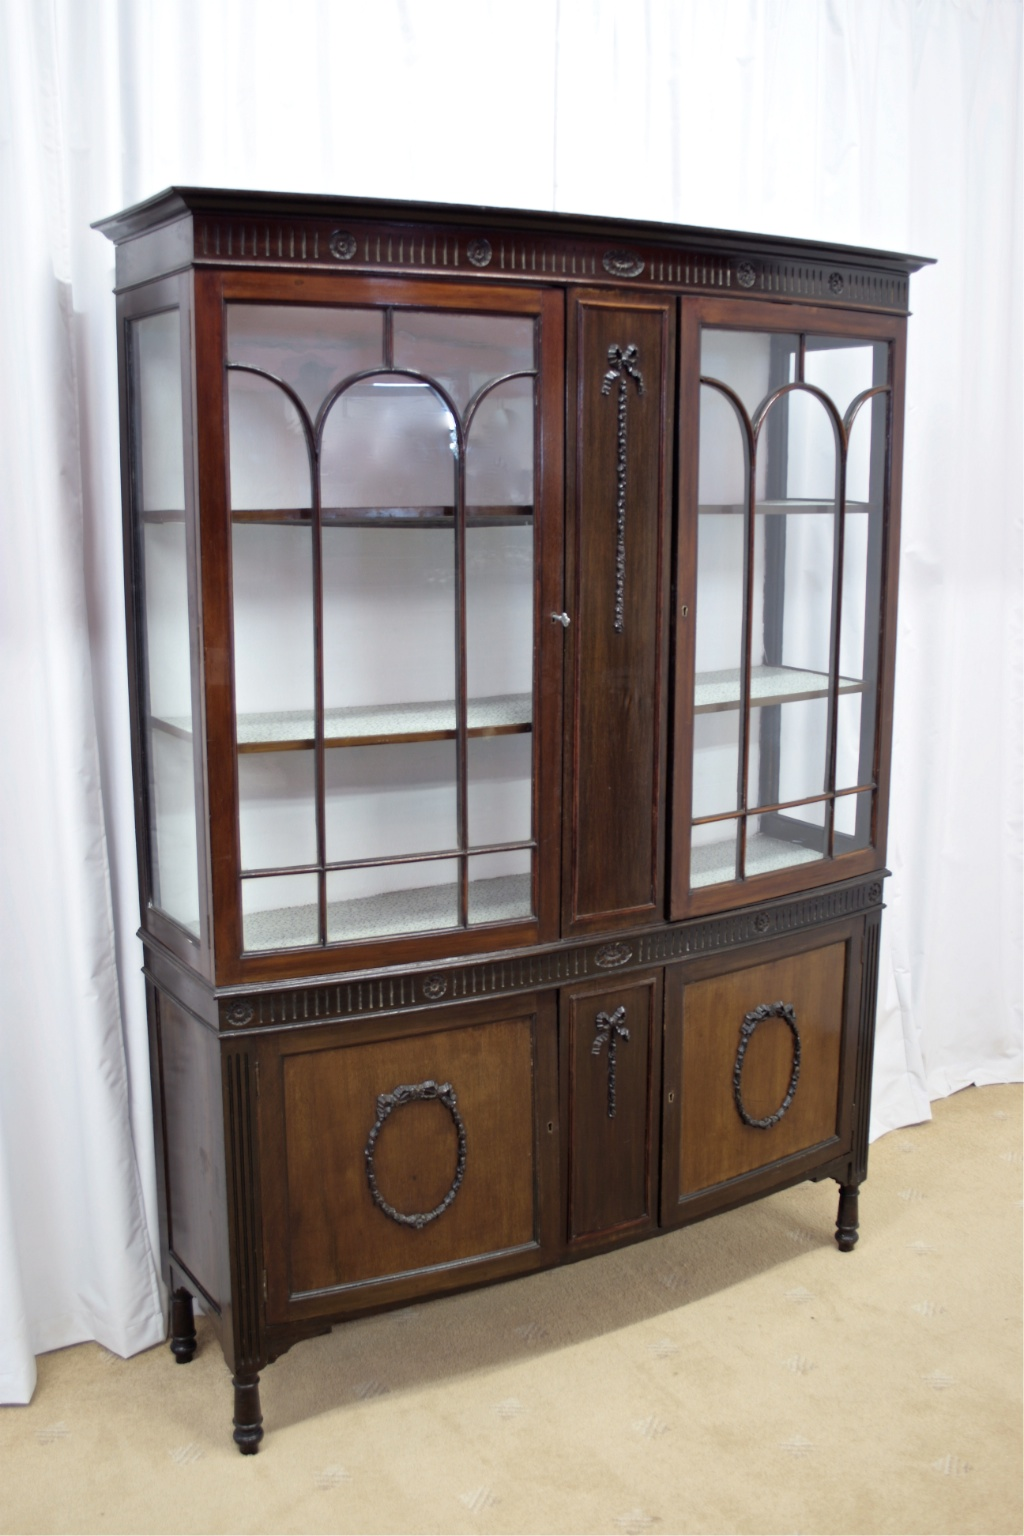 Edwardian Mahogany Bow Fronted Display Cabinet - For Sale - Edwardian Mahogany Bow Fronted Display Cabinet For Sale Antiques